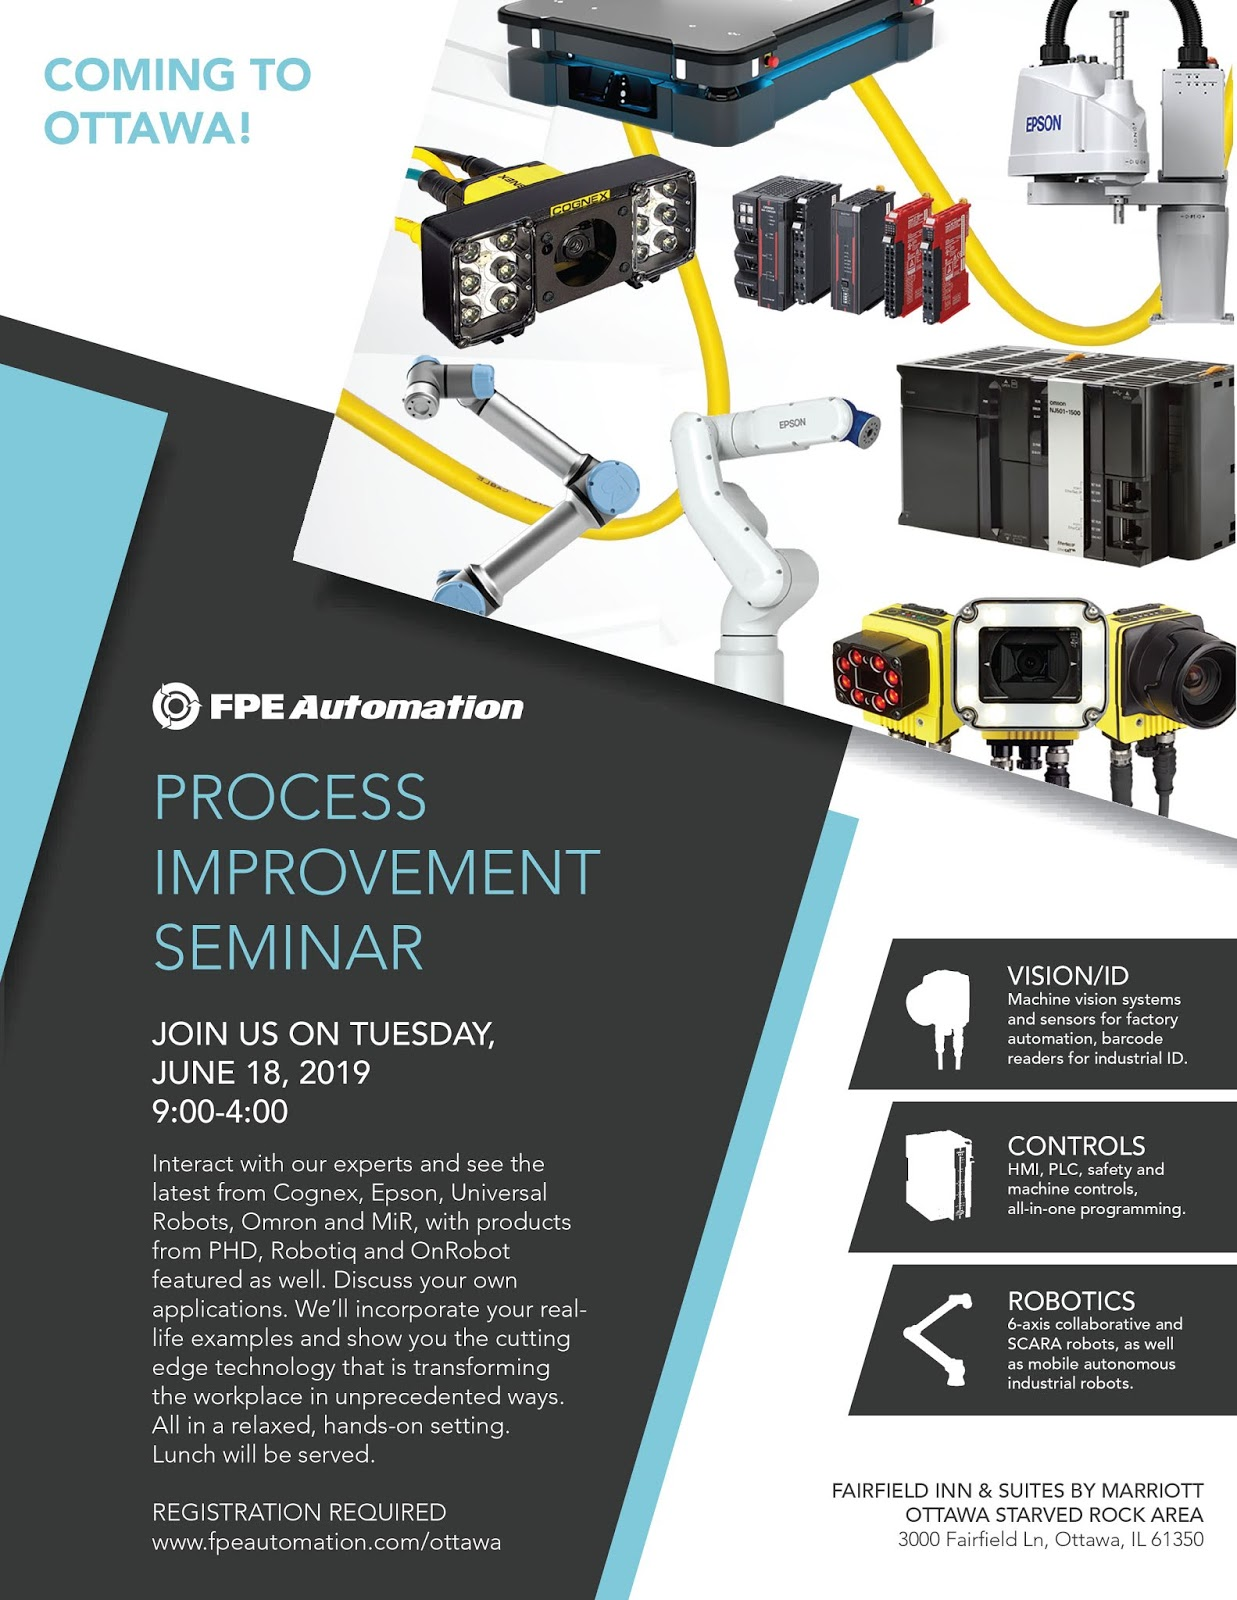 Industrial Automation, Controls, Vision/ID and Robotics Seminar in